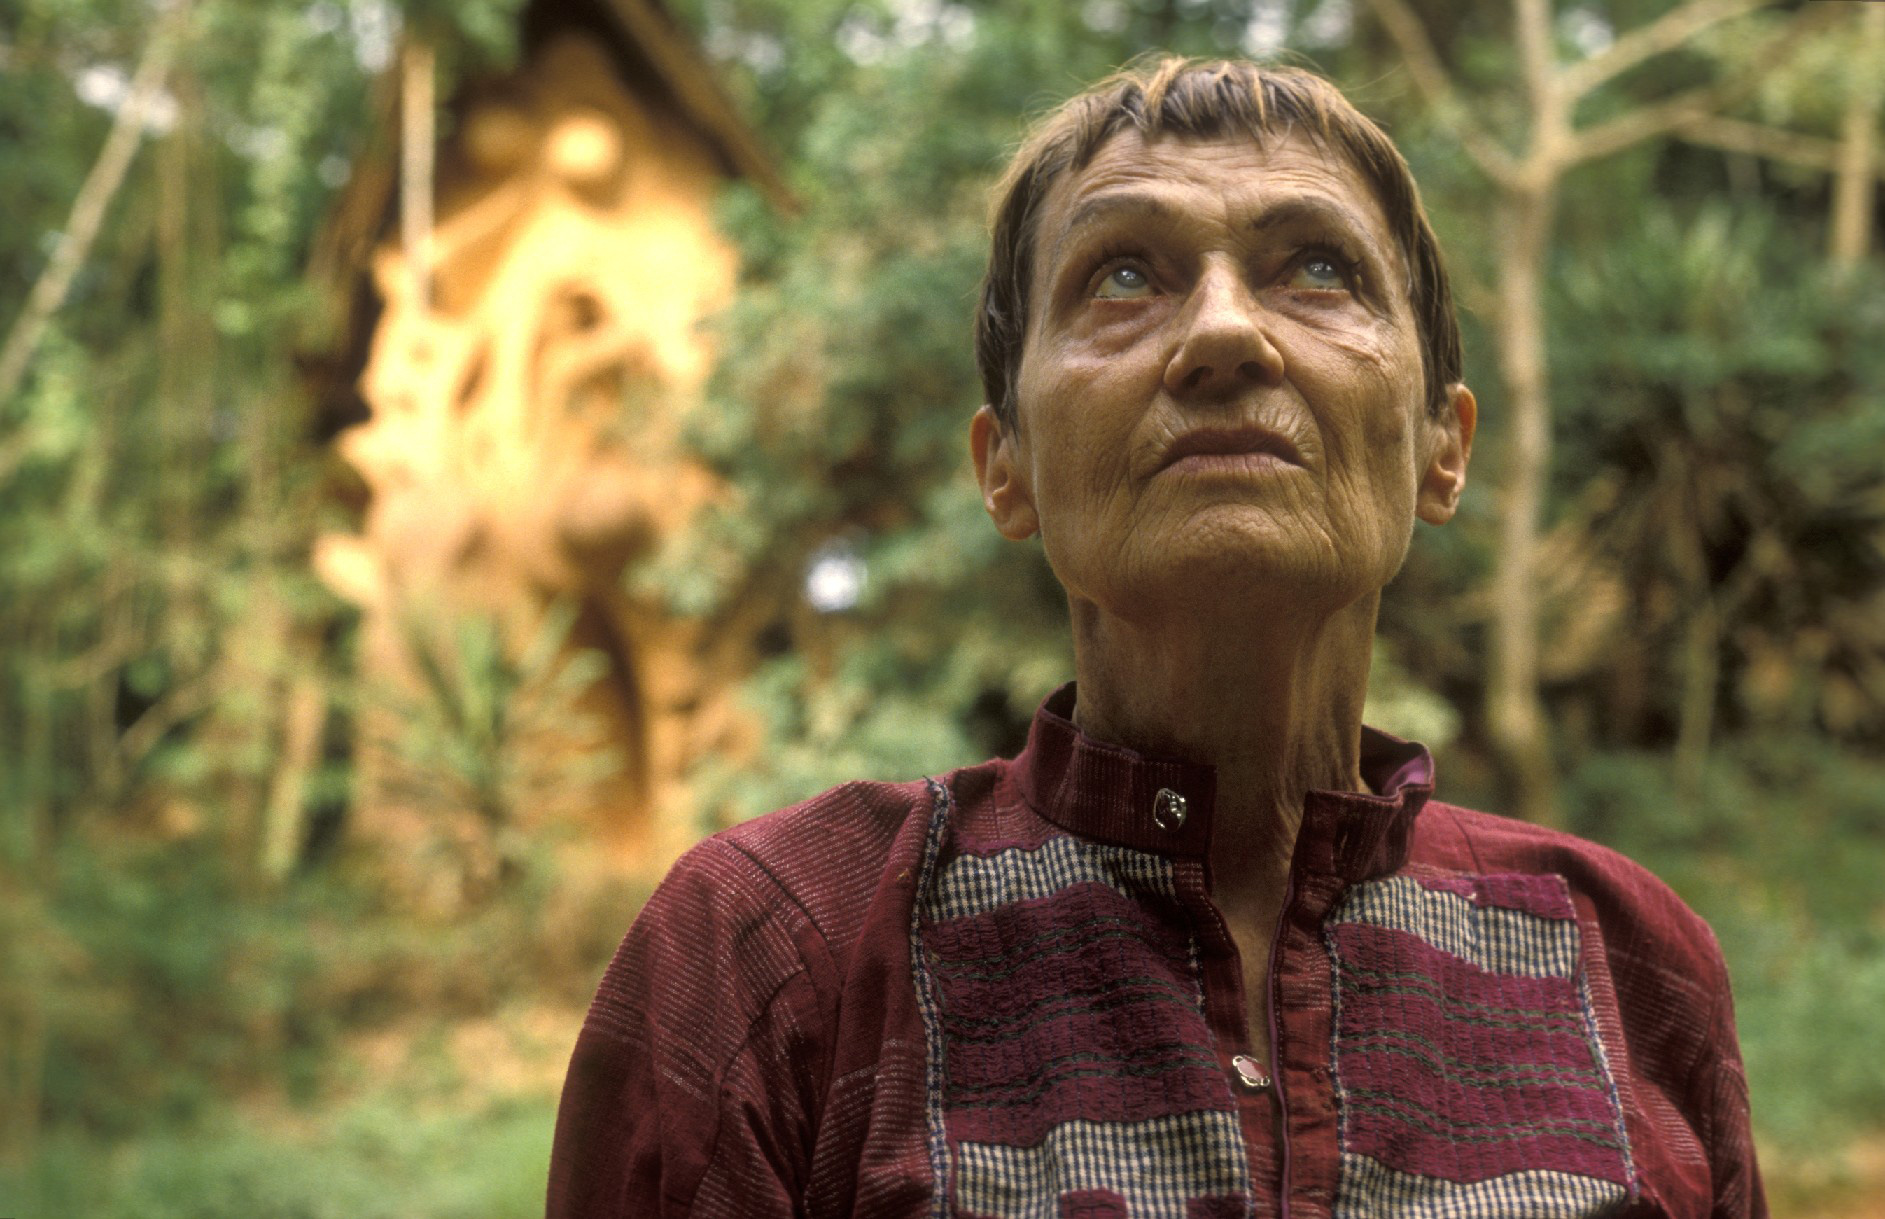 Susanne Wenger, with the Ọbàtálá shrine in the back at the Sacred Grove.©Wolfgang Denk